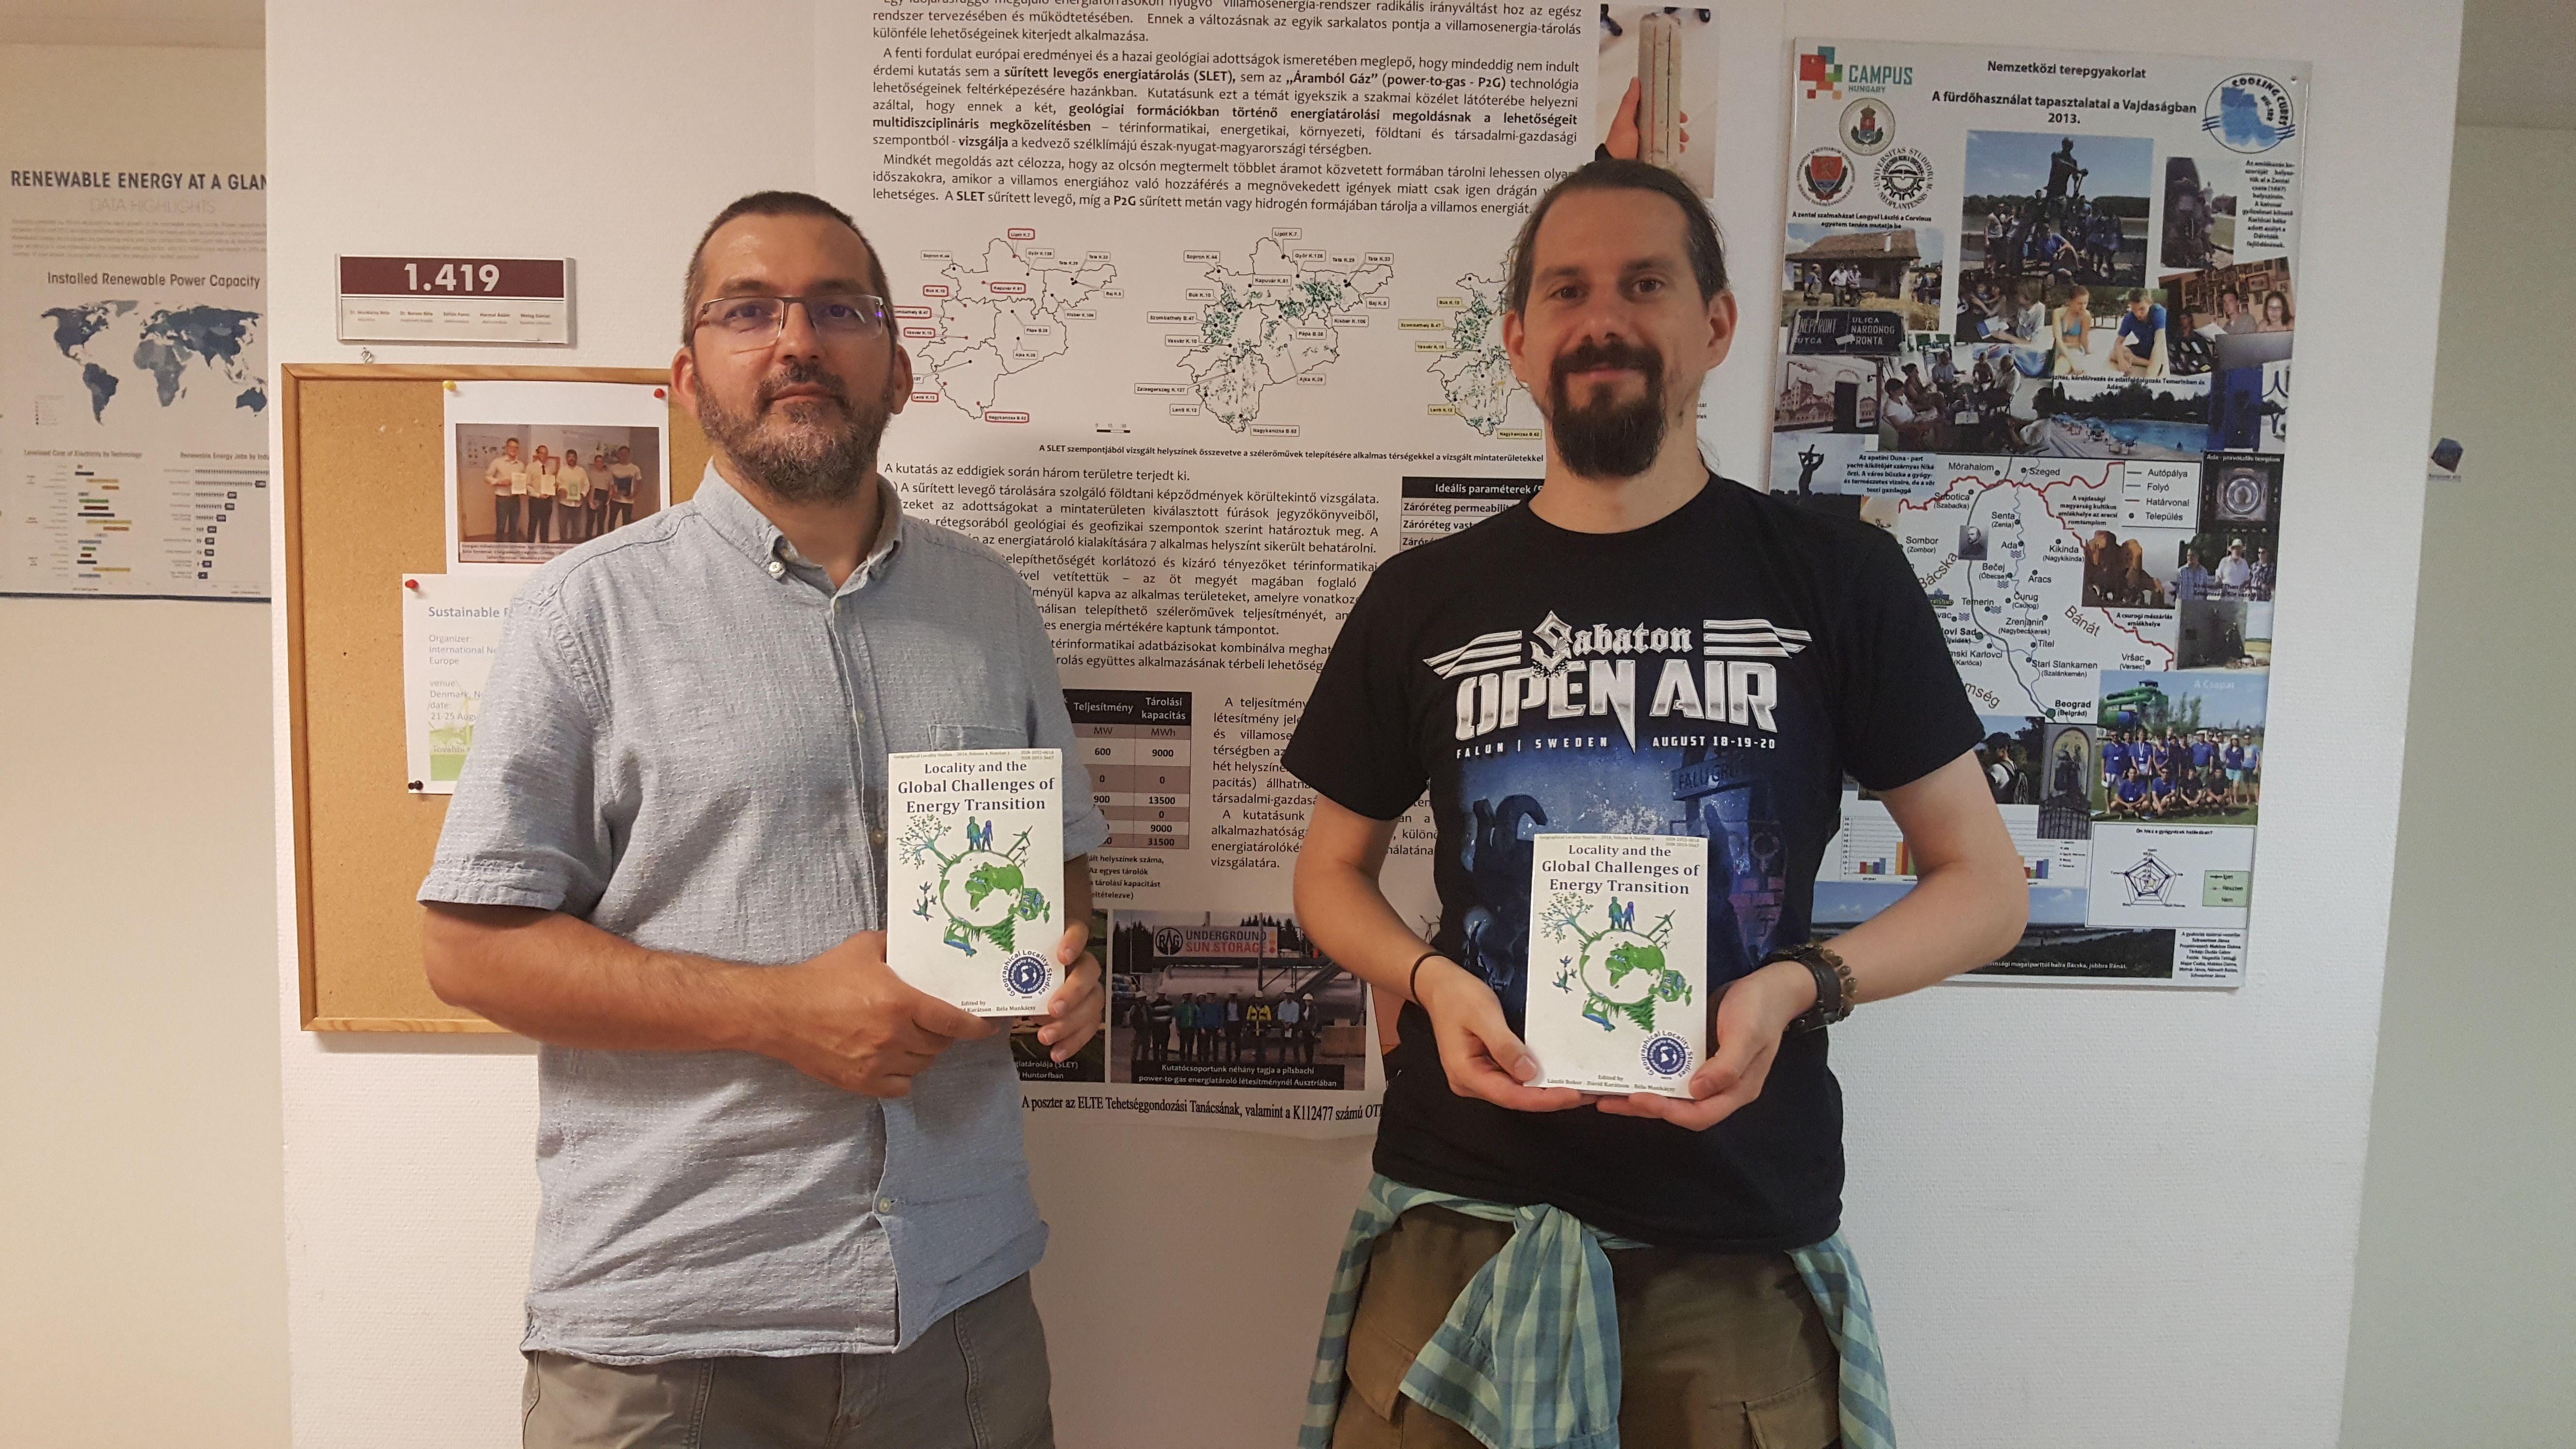 Editorial meeting at the ELTE University in Budapest, posing with brand new GLS 4 books. The online version is available free of charge at www.frugeo.science/gls4.html